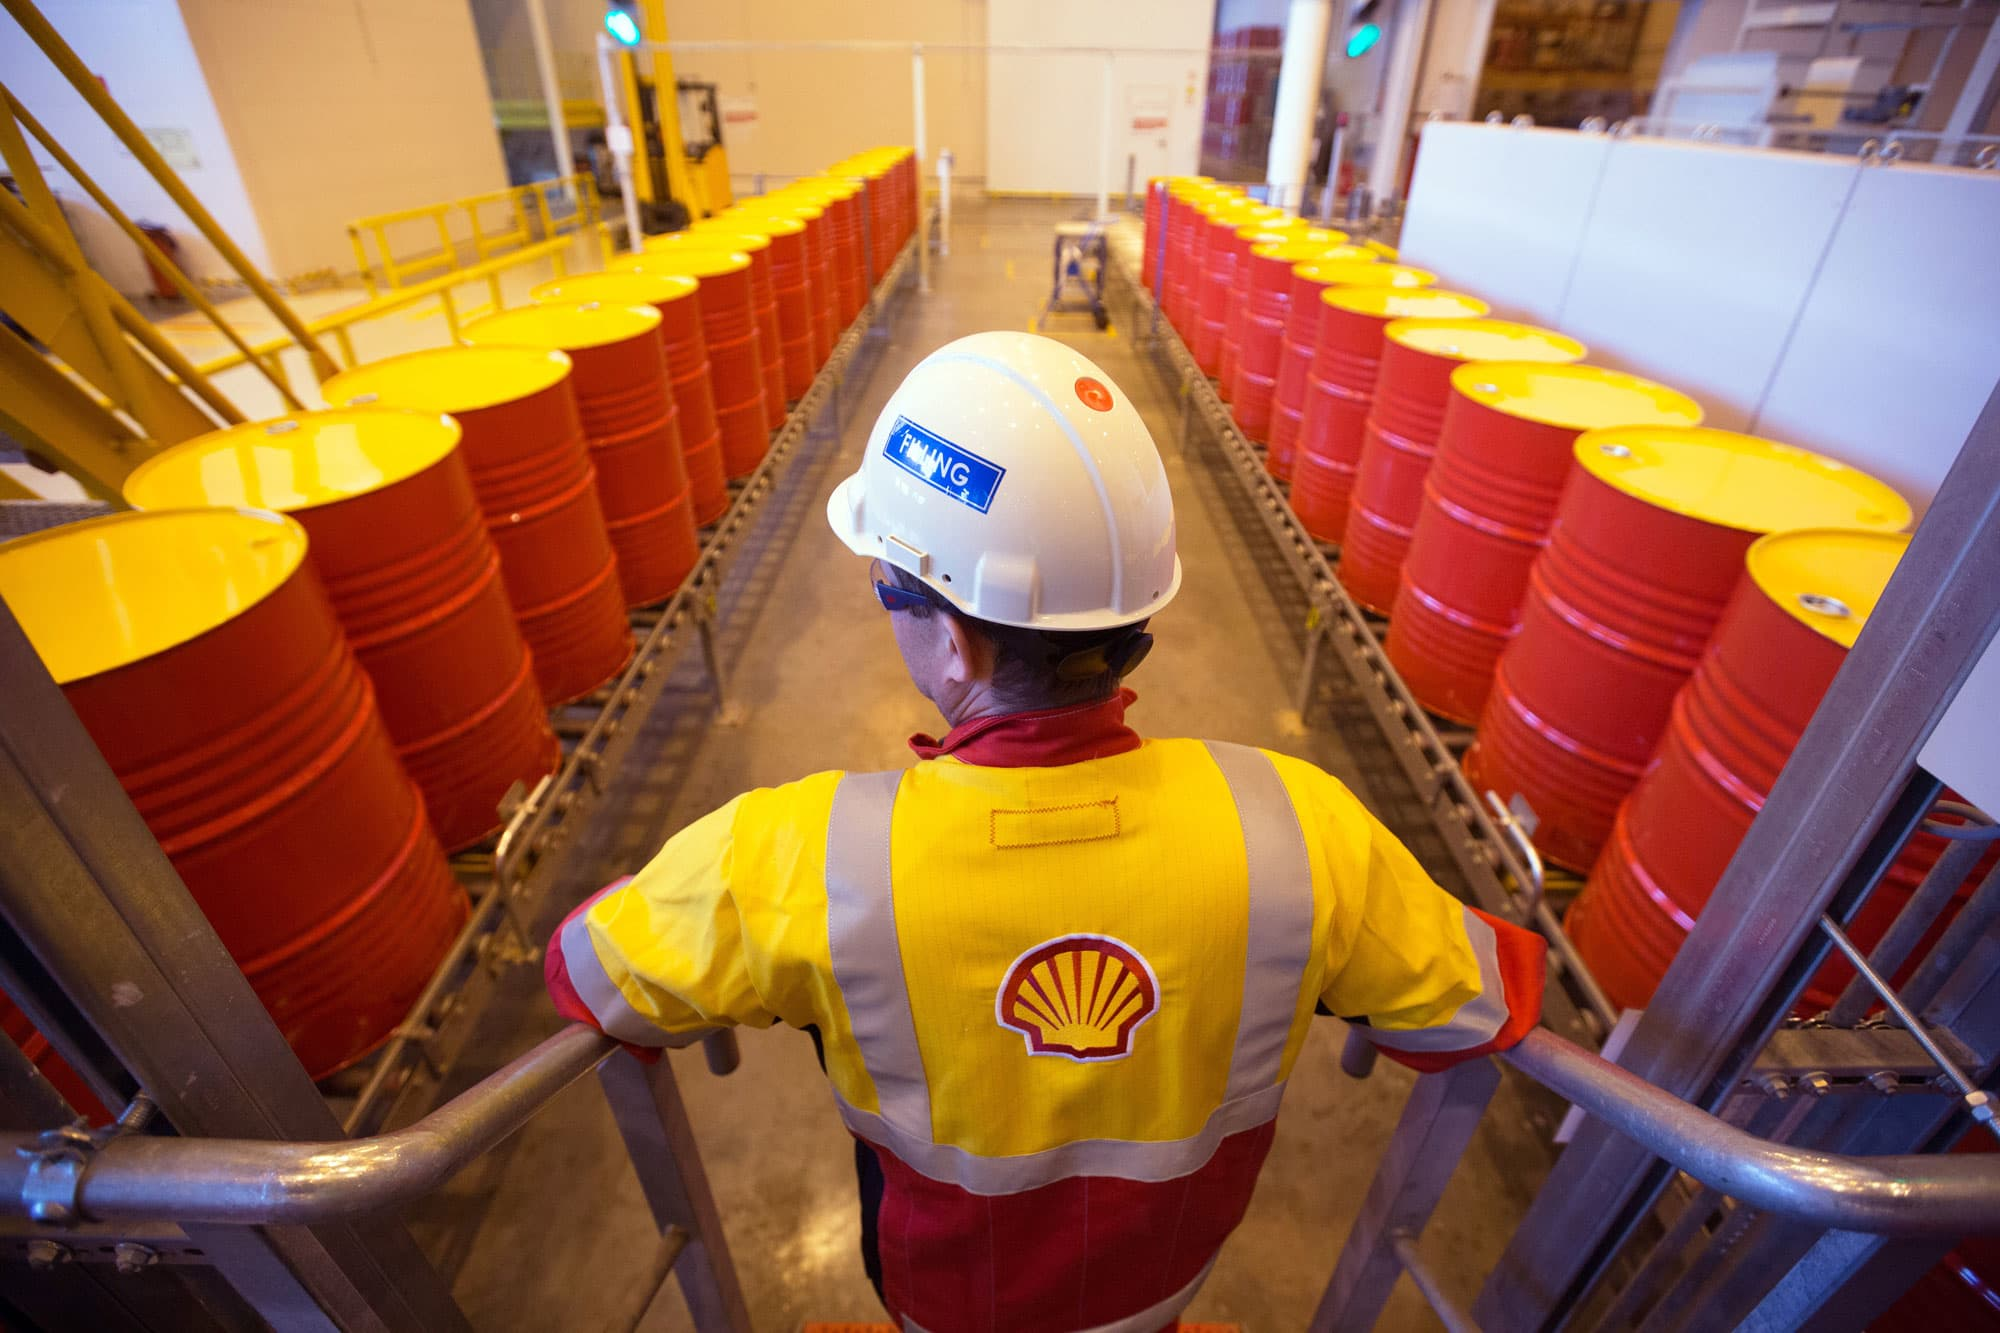 Shell's profits slump to 30-month low on weak oil, gas prices